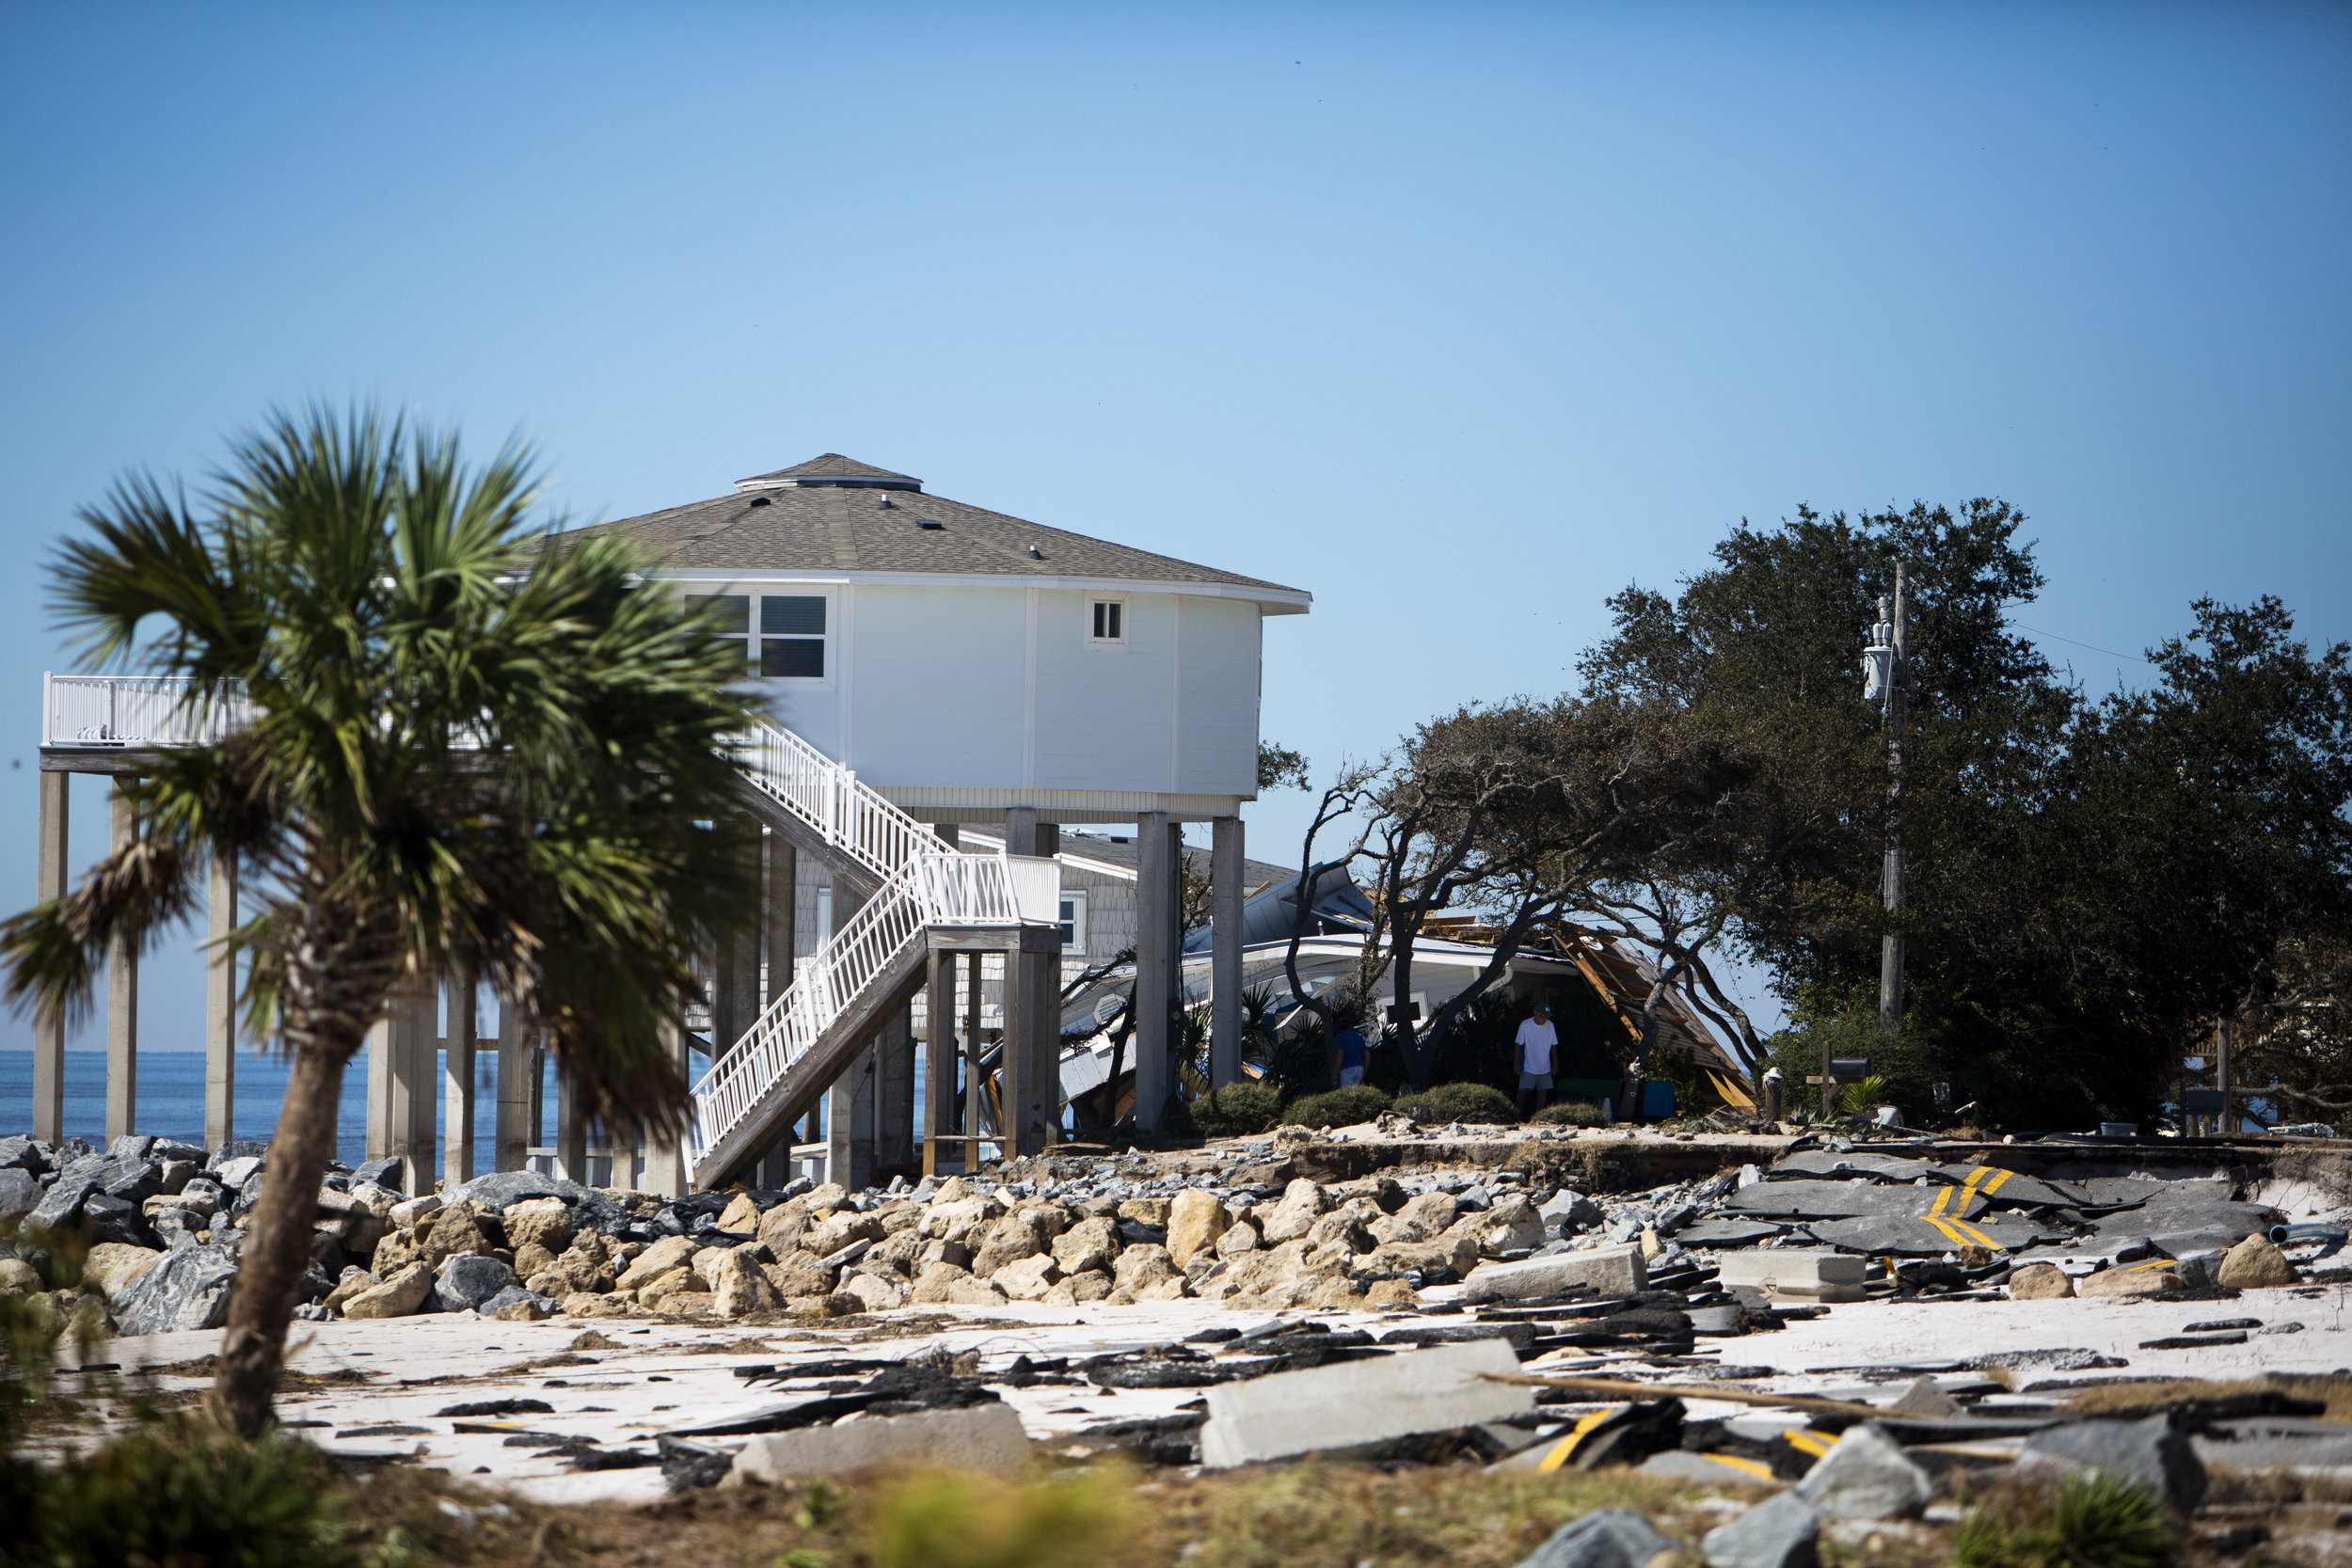 Residents assess the damage to their home after Hurricane Michael hit Alligator Drive in Alligator Point on October 12, 2018.